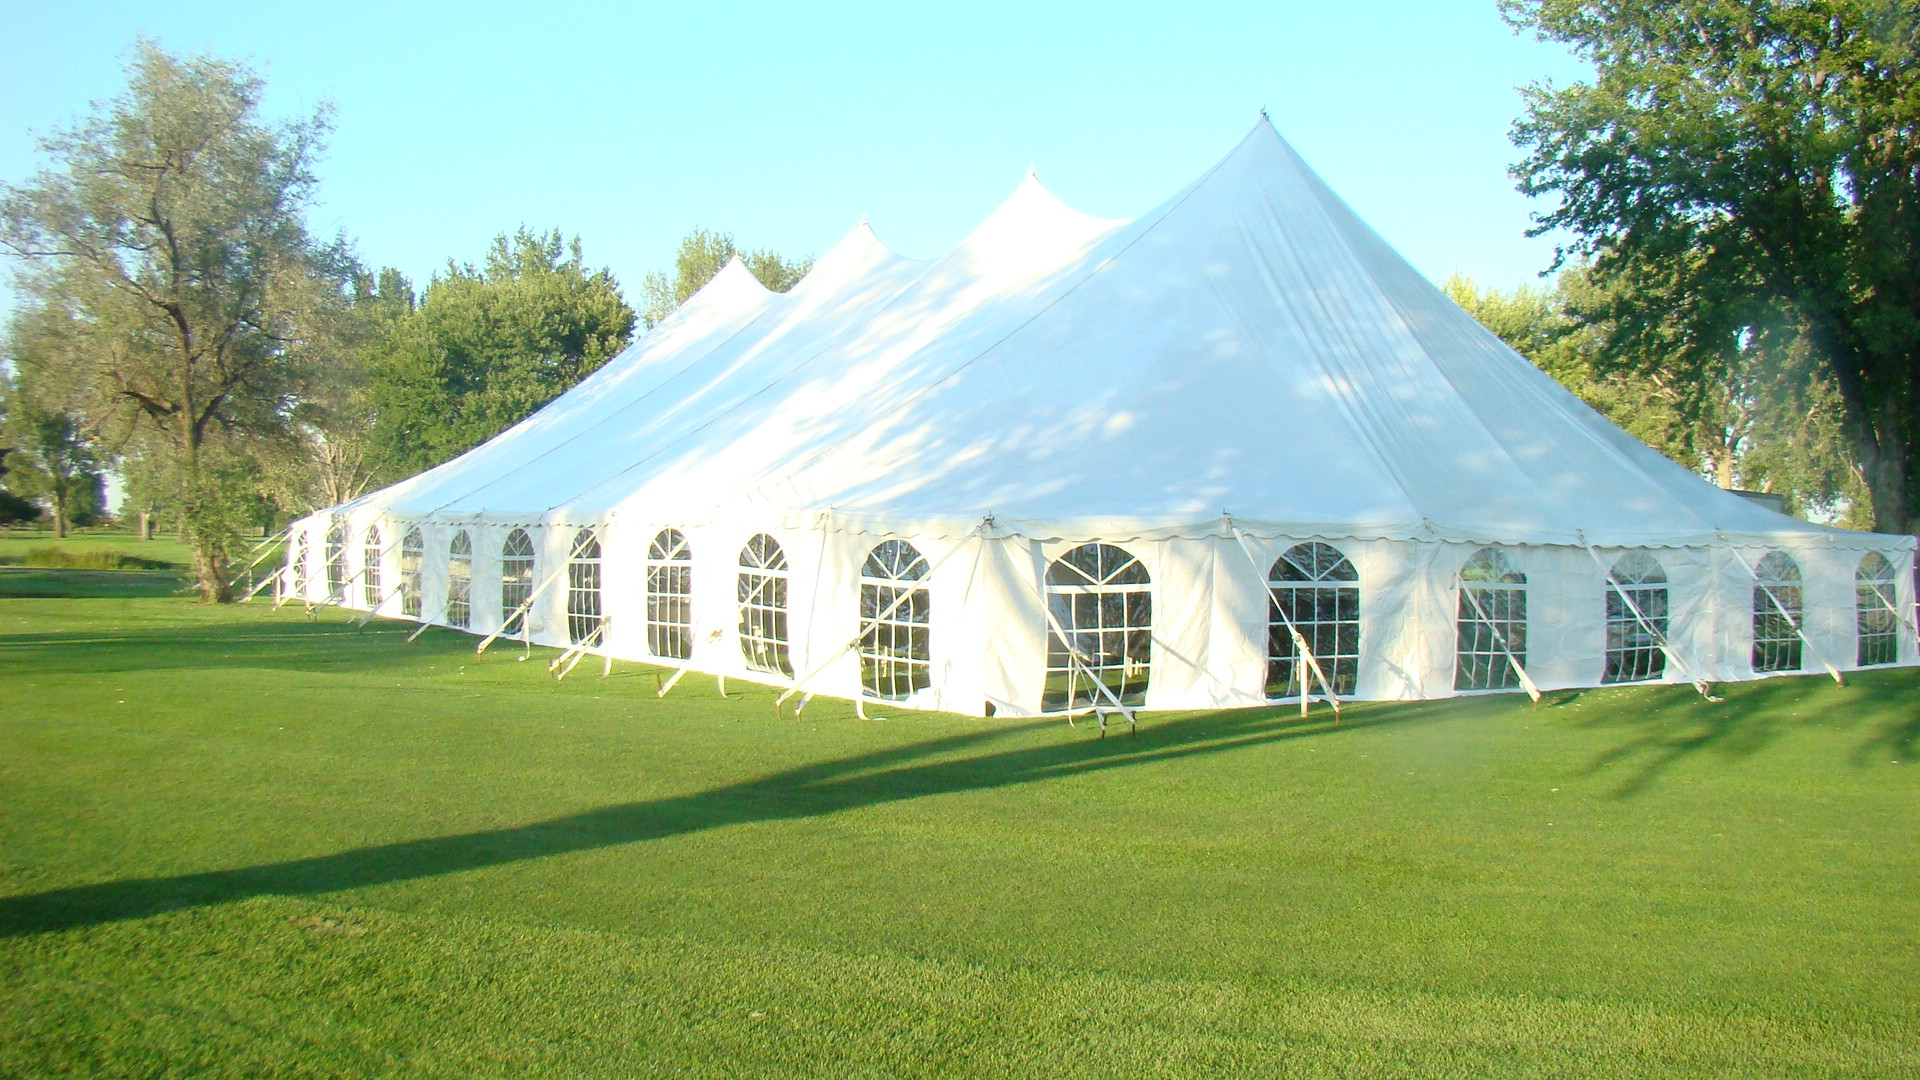 Abc Rentals Midwest Gt Our Products Gt Tents Gt Large Pole Tents